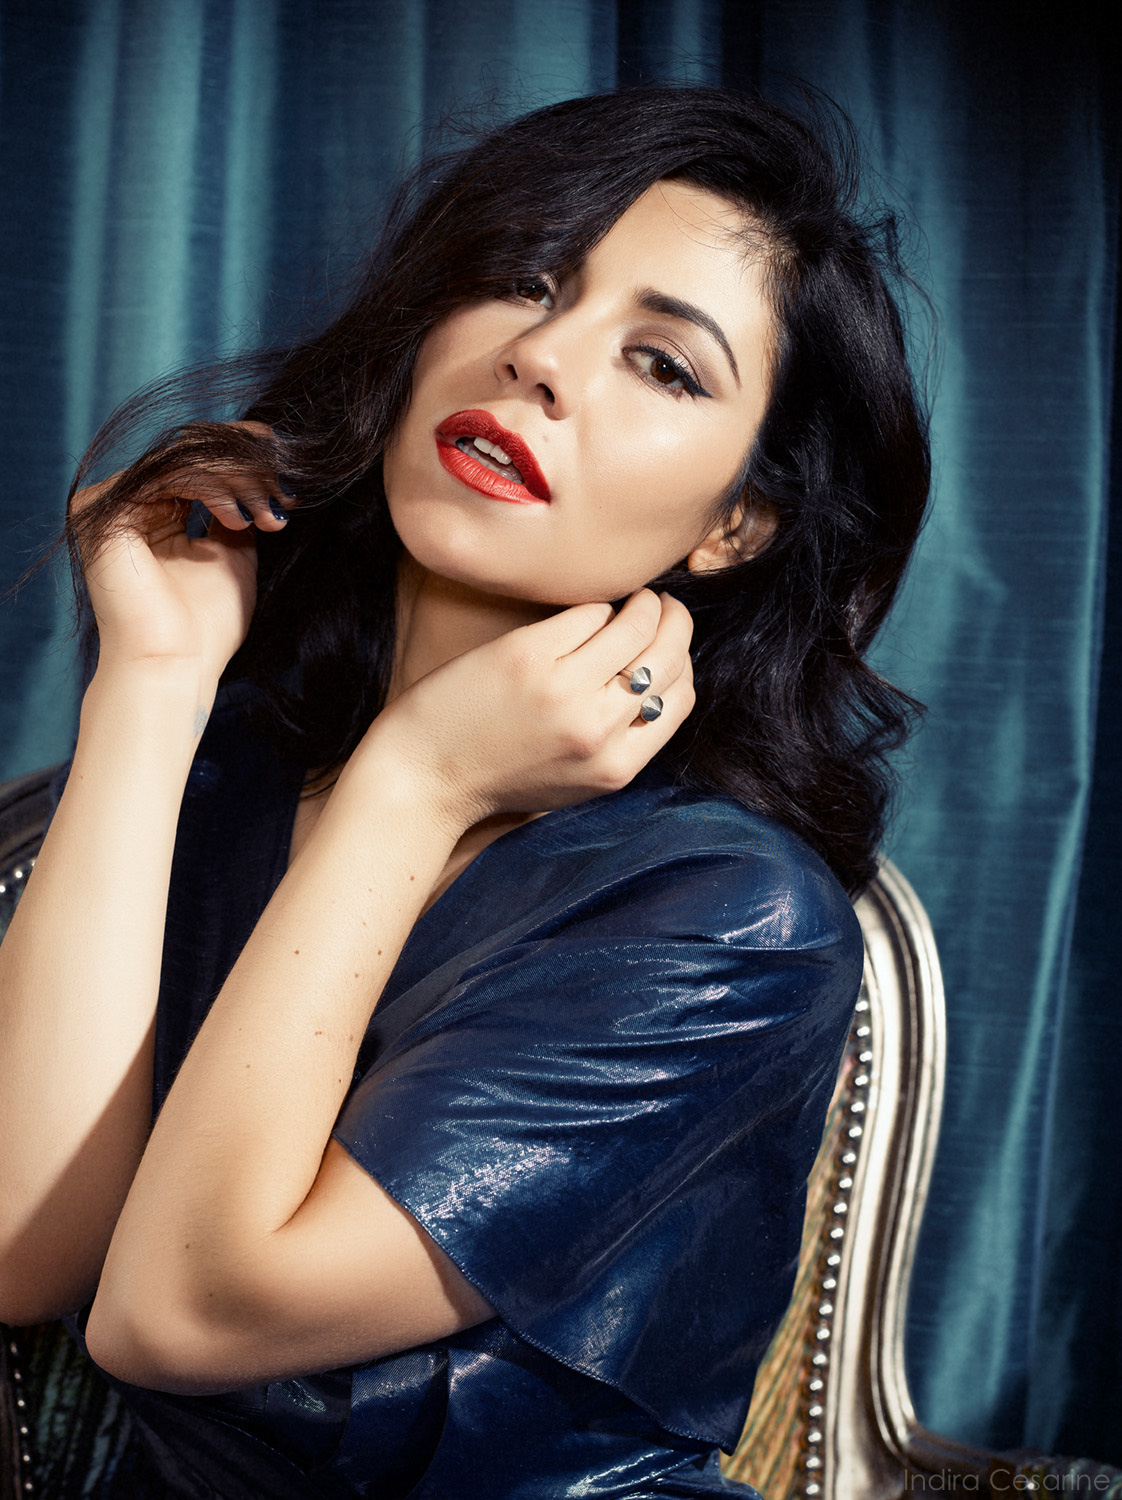 Marina-Diamonds-Photography-Indira-Cesarine-013.jpg